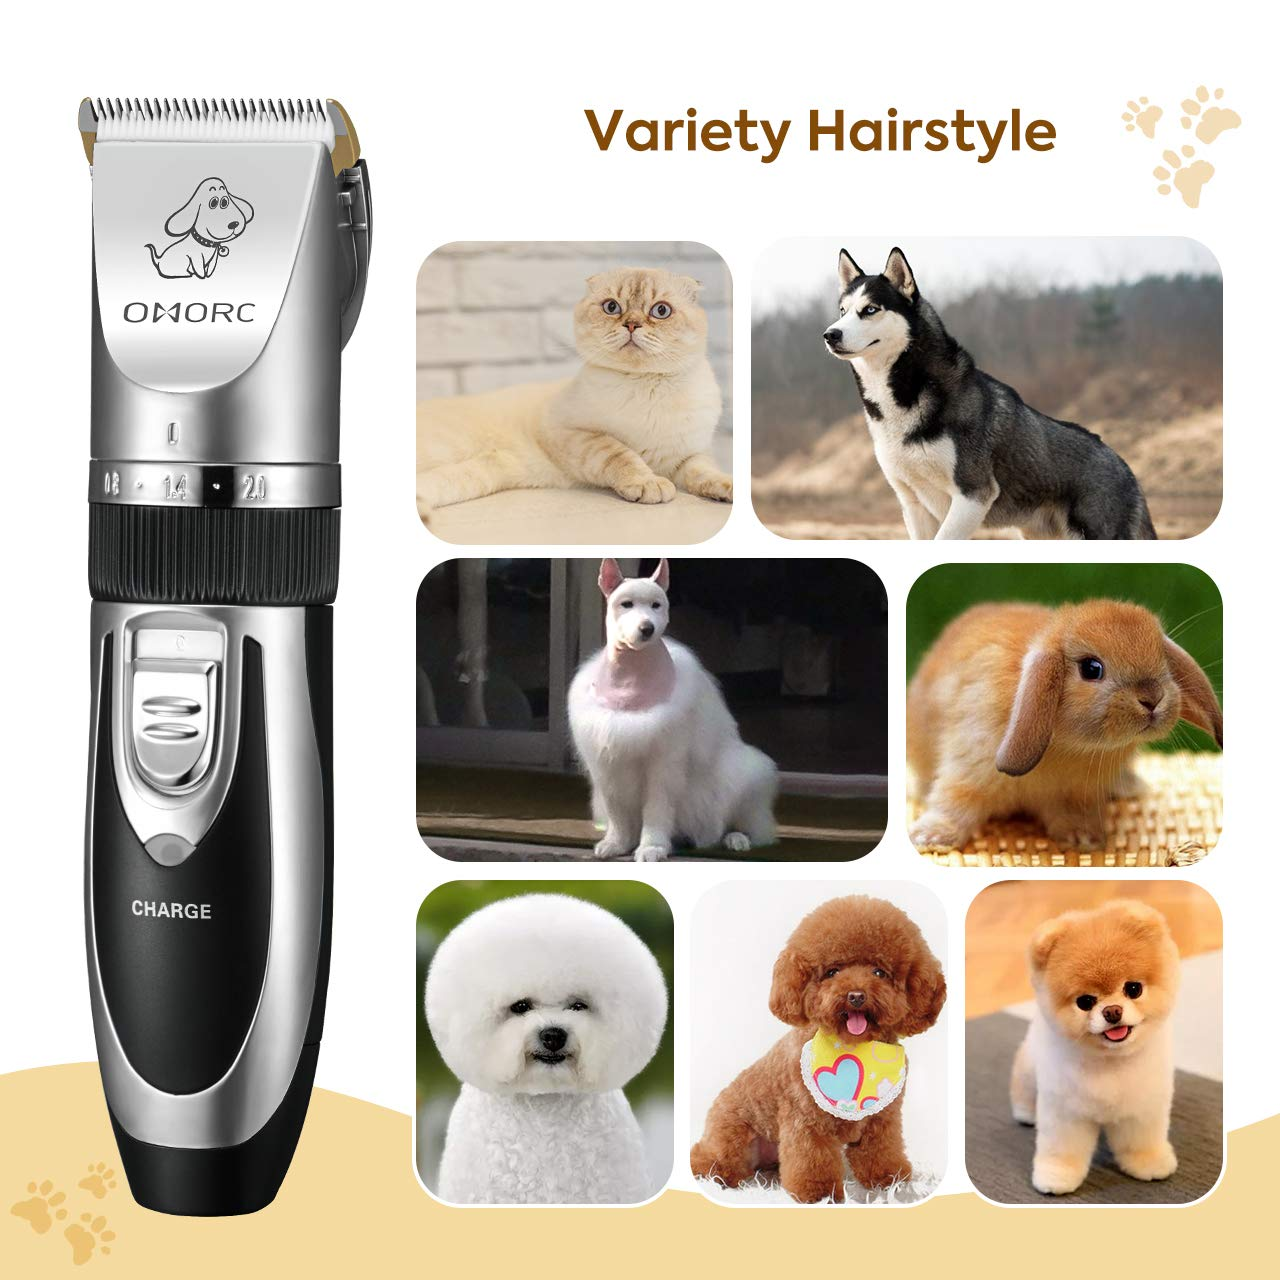 OMORC Dog Clippers Cordless Adjustable Pet Clippers Dog Hair Trimmer Rechargeable Cat Shaver Pet Grooming Professional Low Noise Dog Grooming kit with 8 Kinds Tools by OMORC (Image #10)